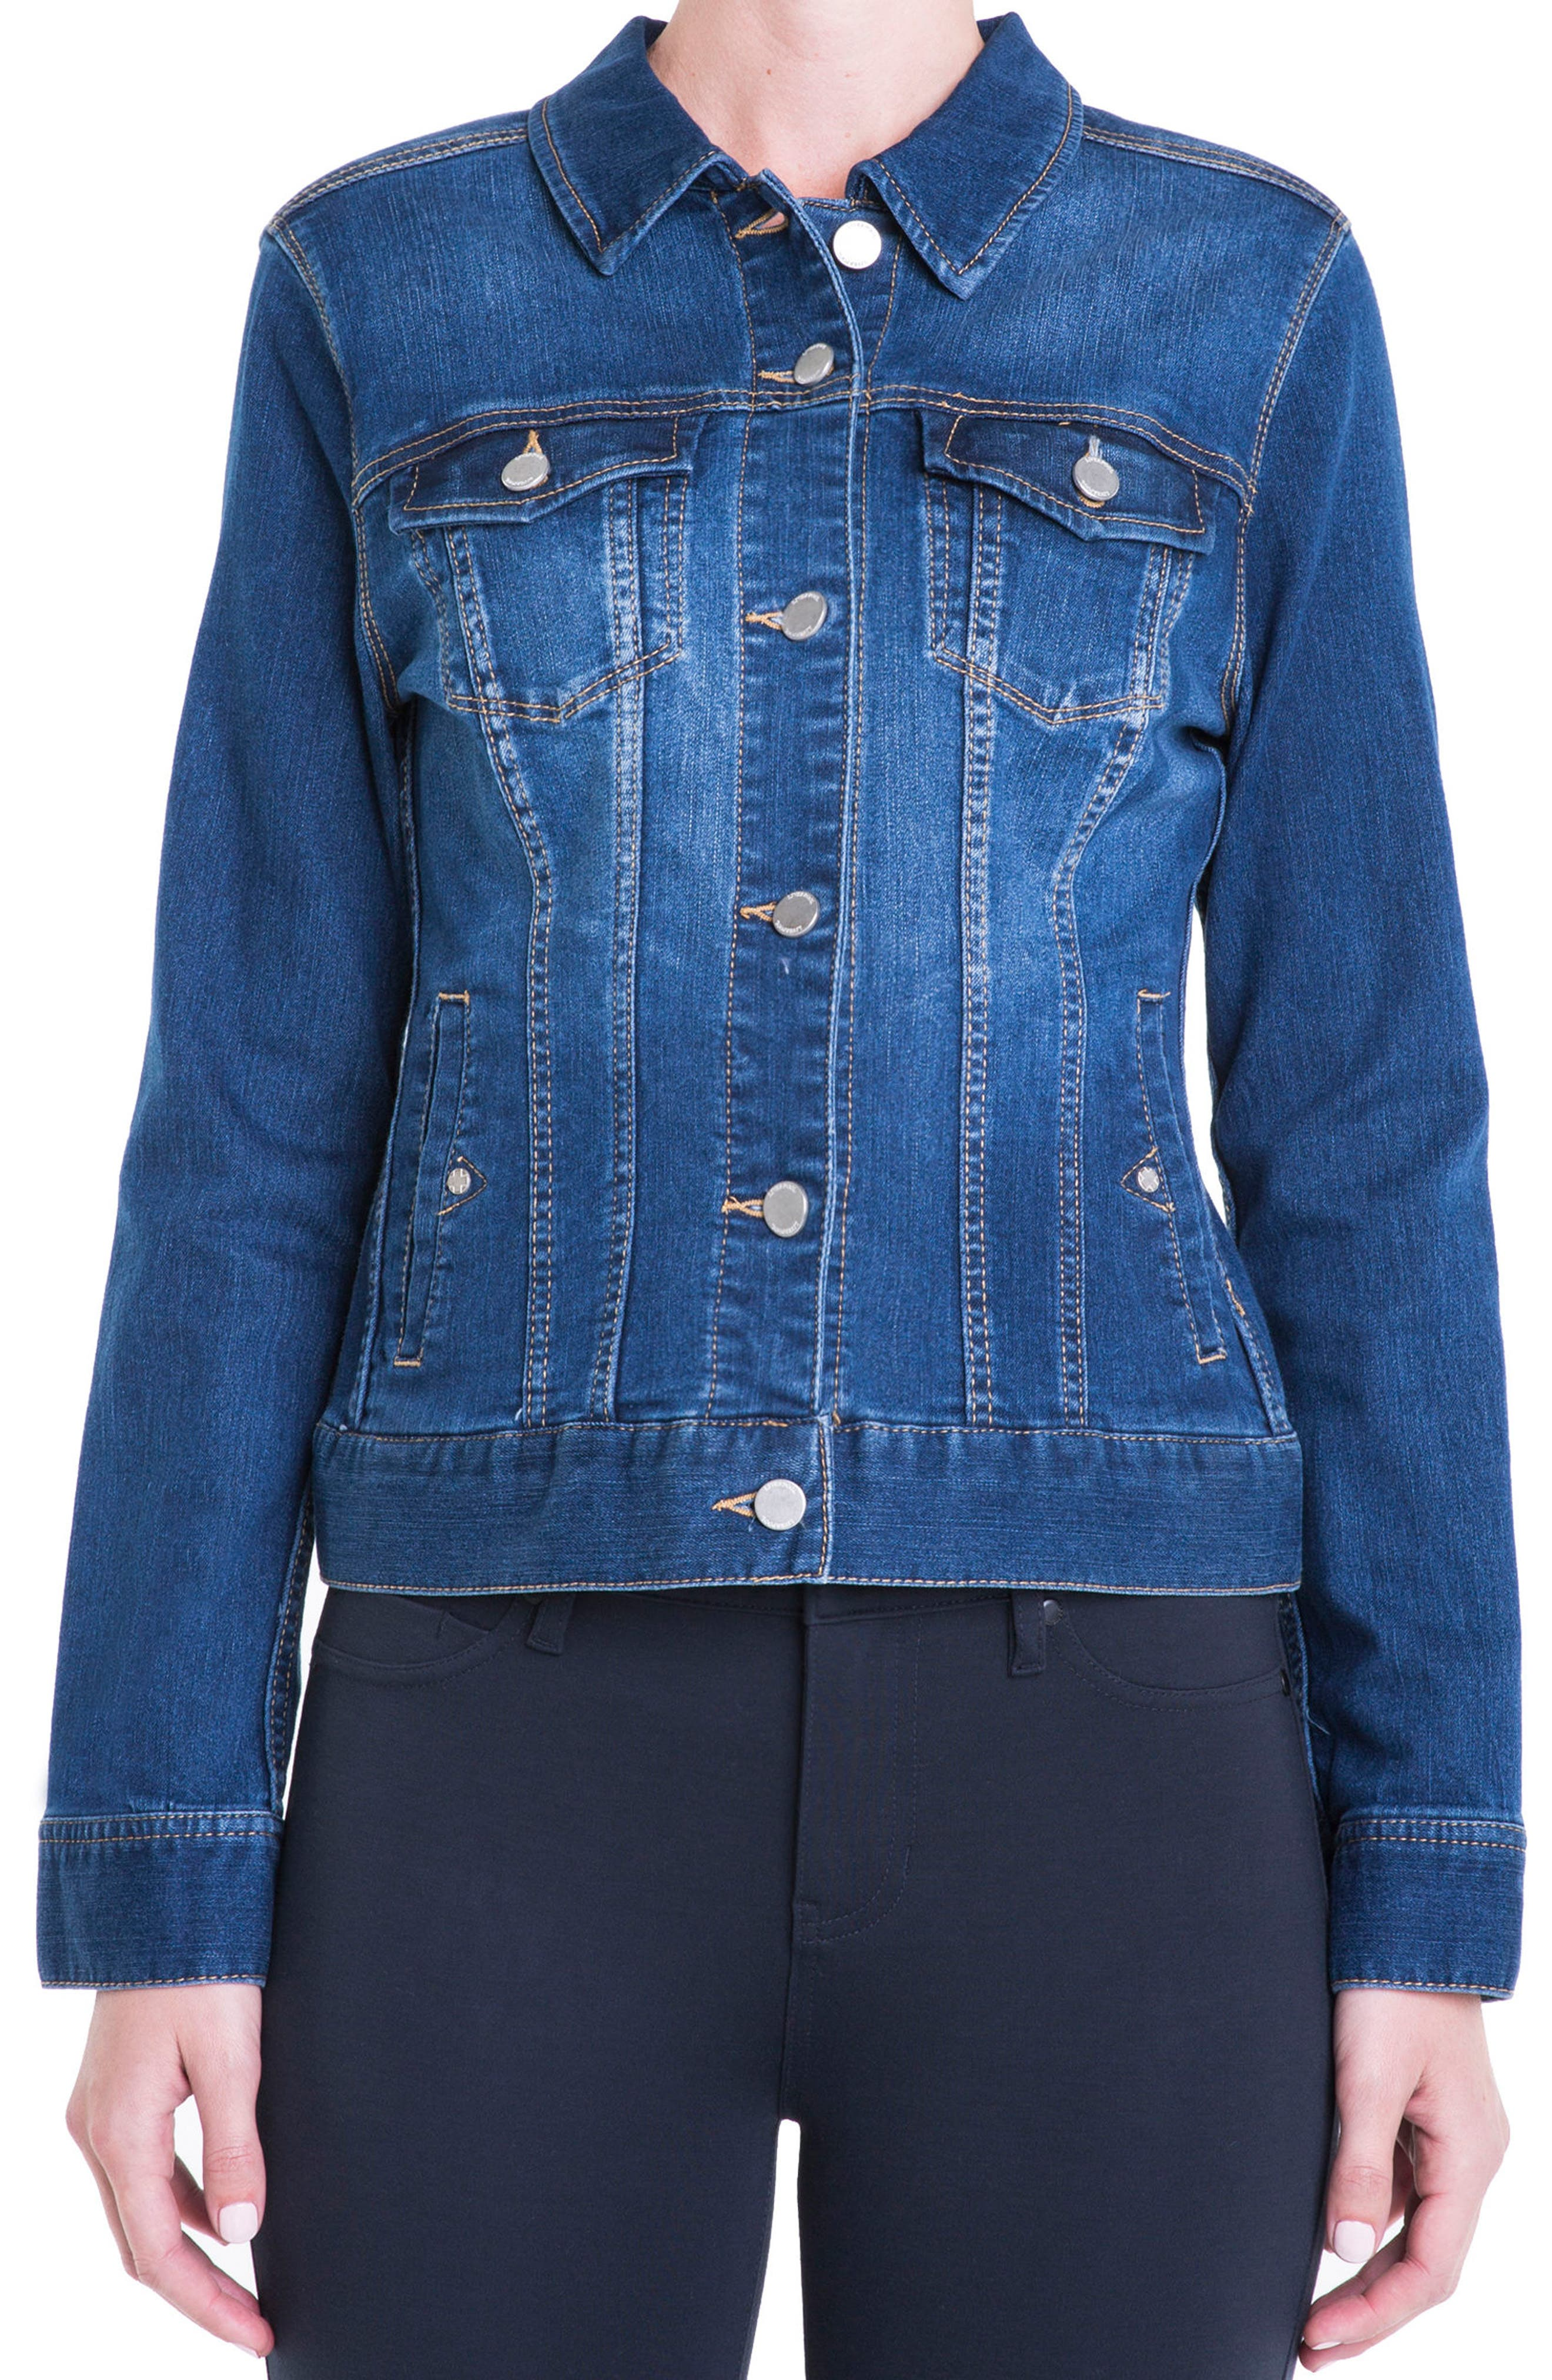 Alternate Image 1 Selected - Liverpool Jeans Company Denim Jacket (Petite)